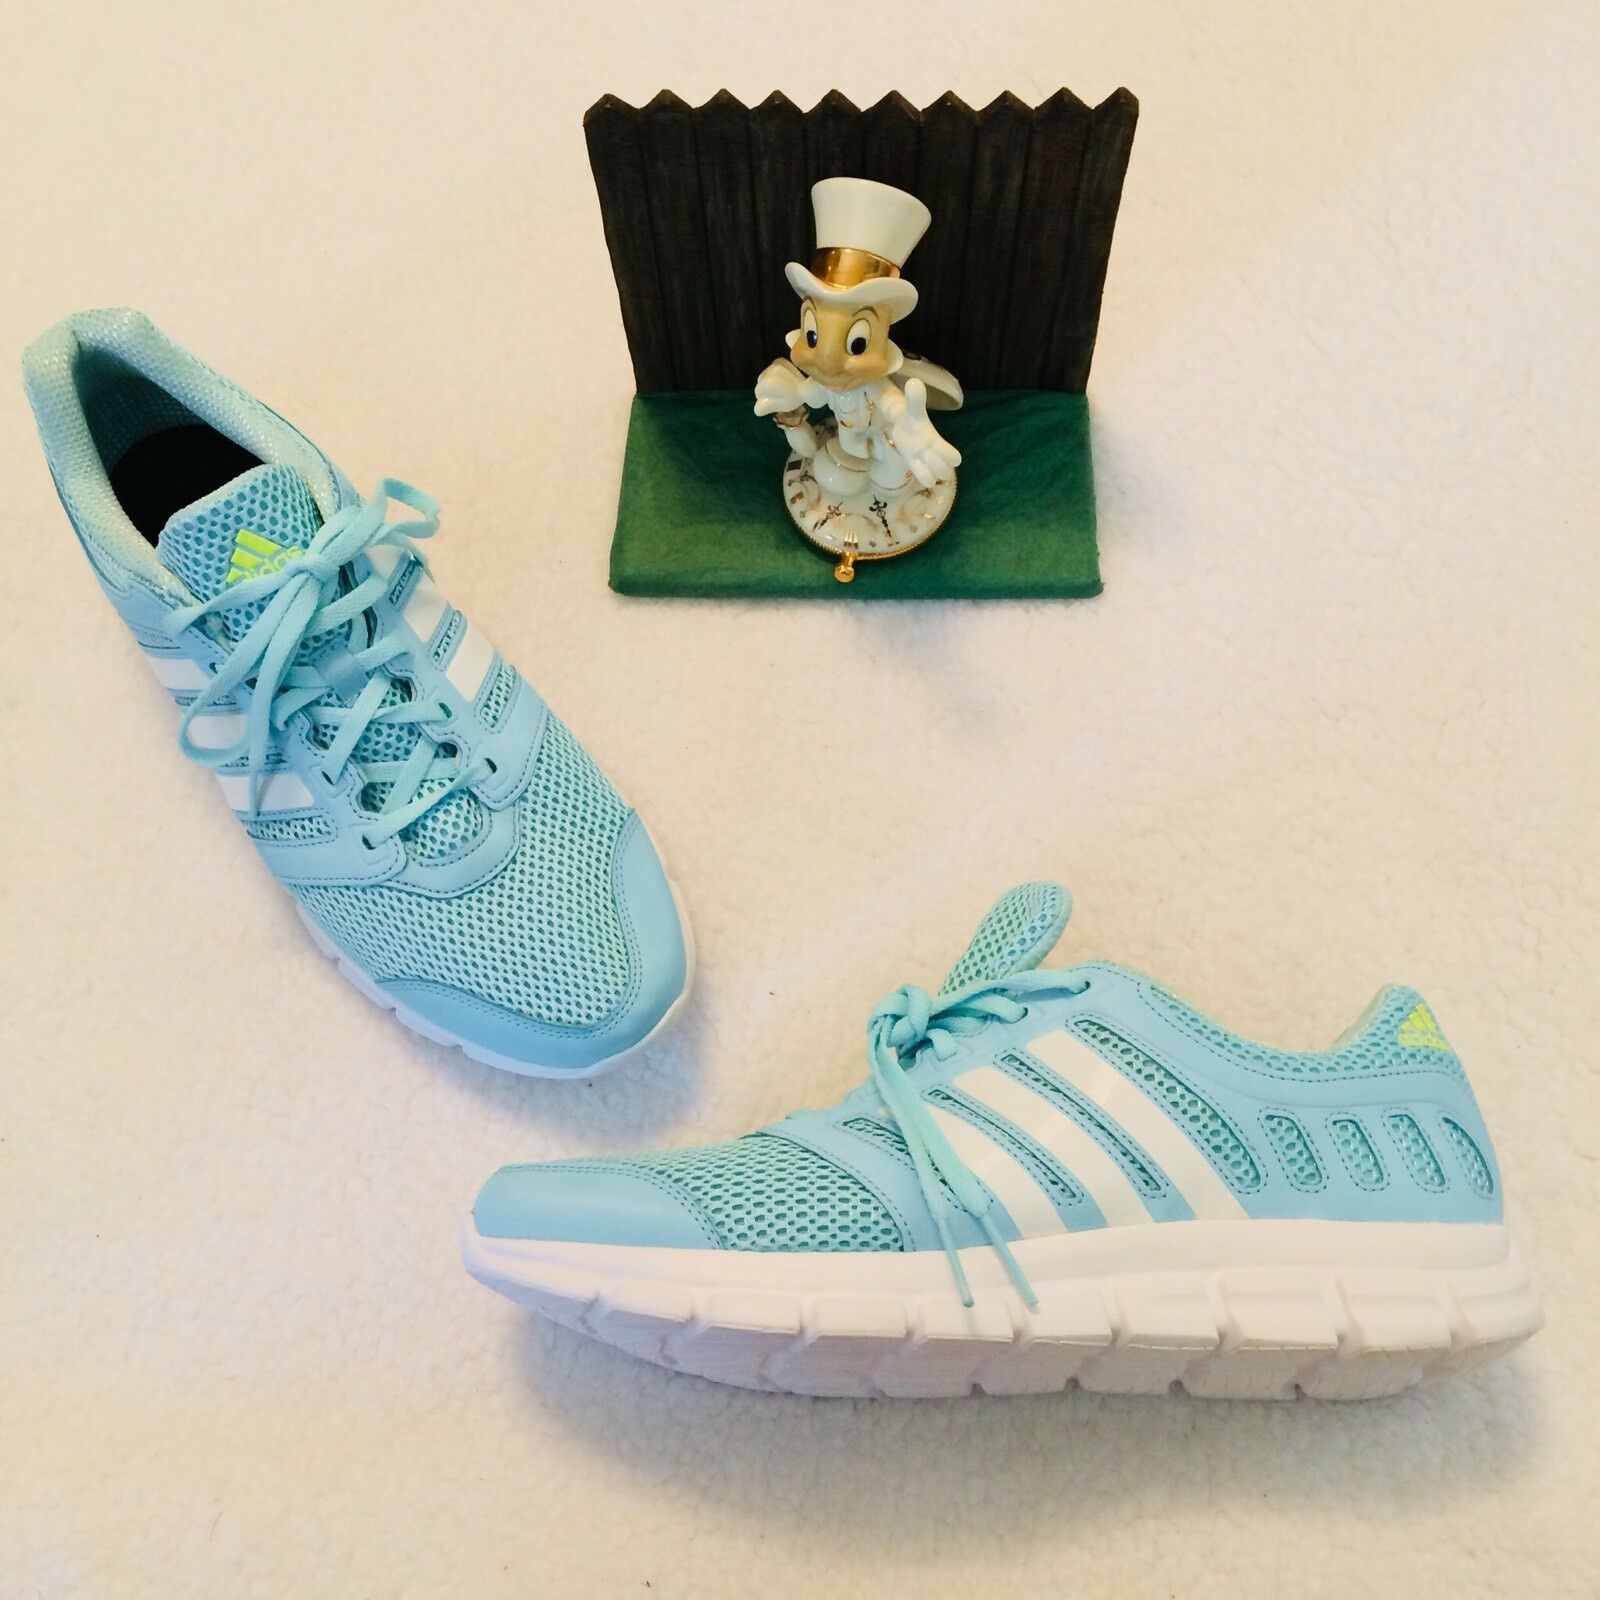 Adidas Breeze 11 M Baby bluee White Men Jogging Running Trainer shoes New Display